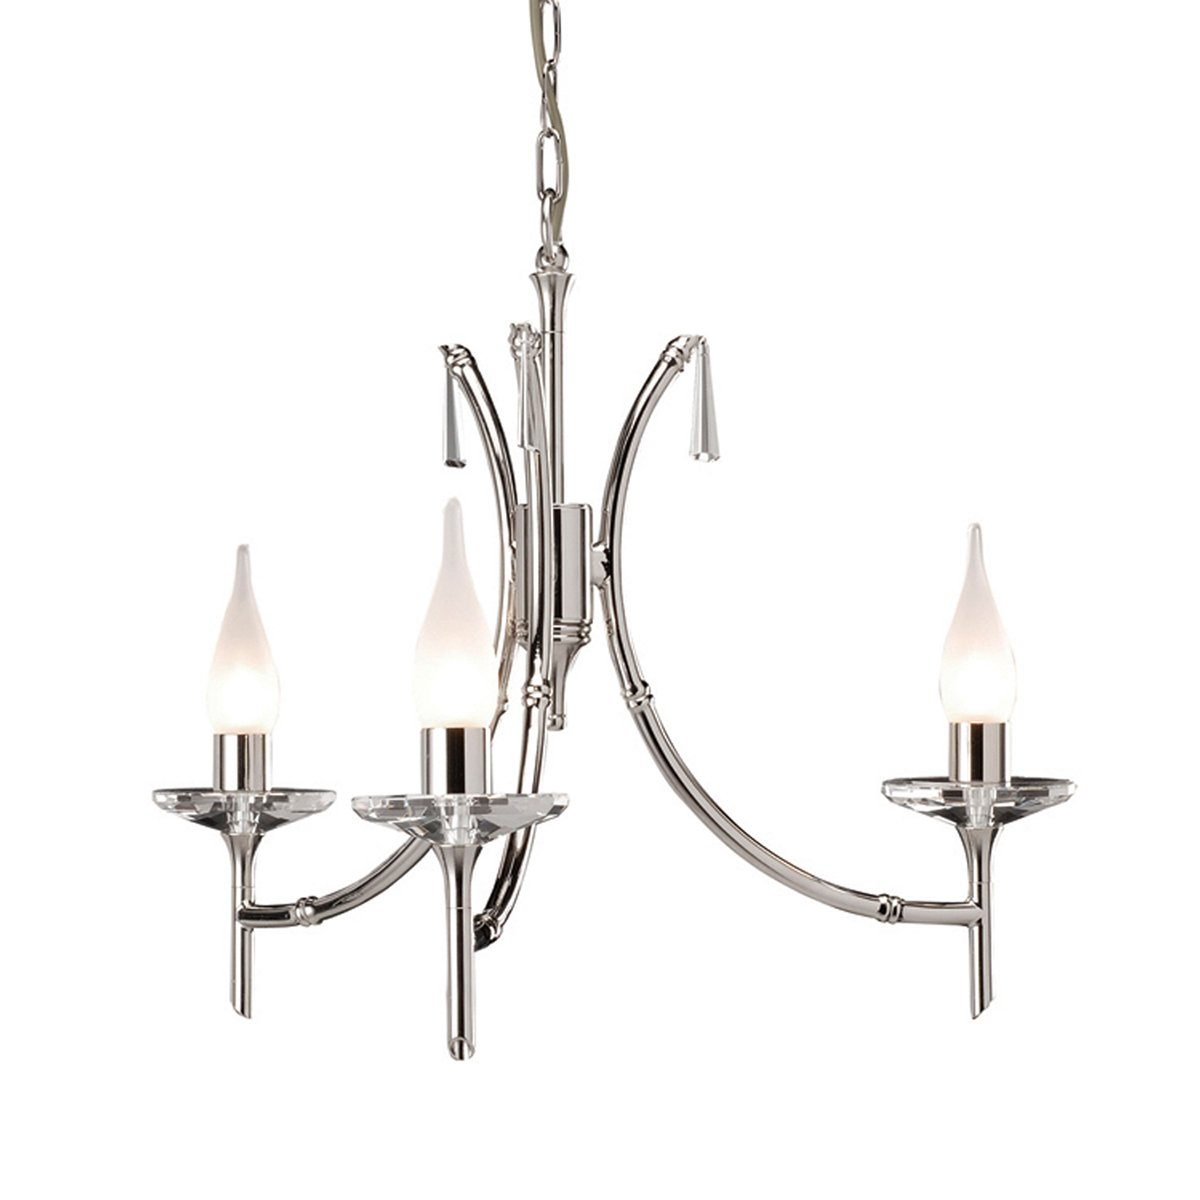 Elstead BR3 Brightwell 3 Light Chandelier in Polished Nickel